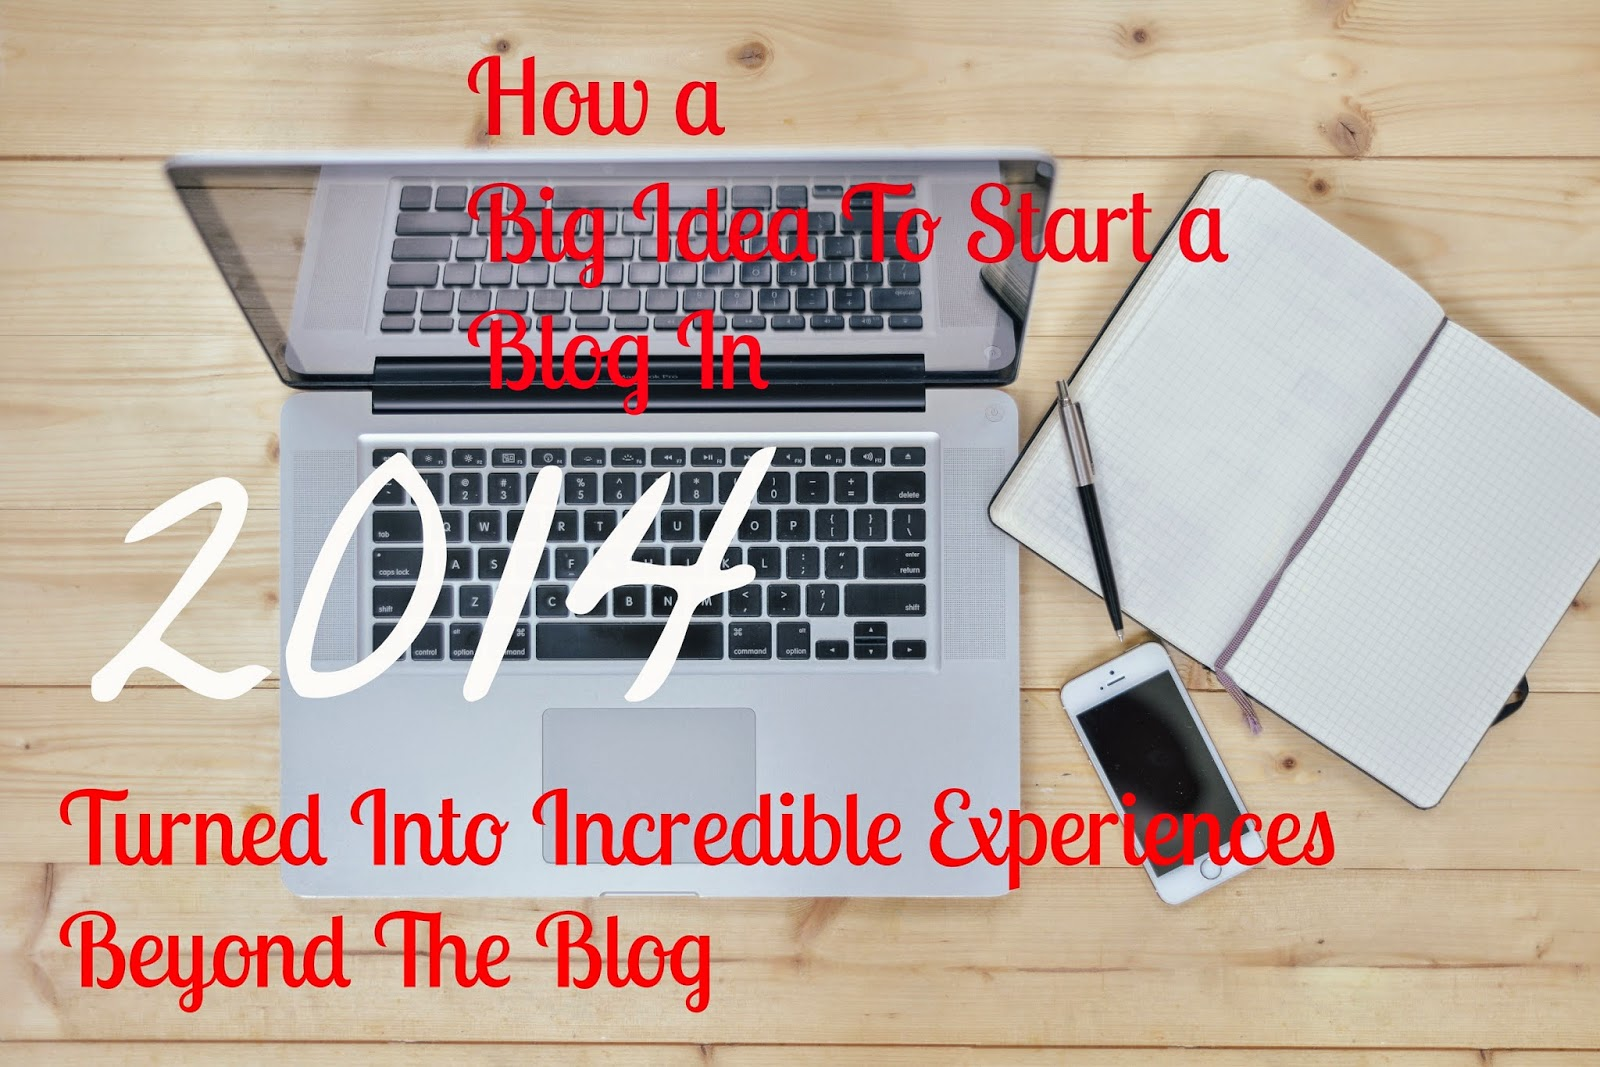 A Big Idea To Start a Blog in 2014 Turned Into Incredible Experiences Beyond The Blog